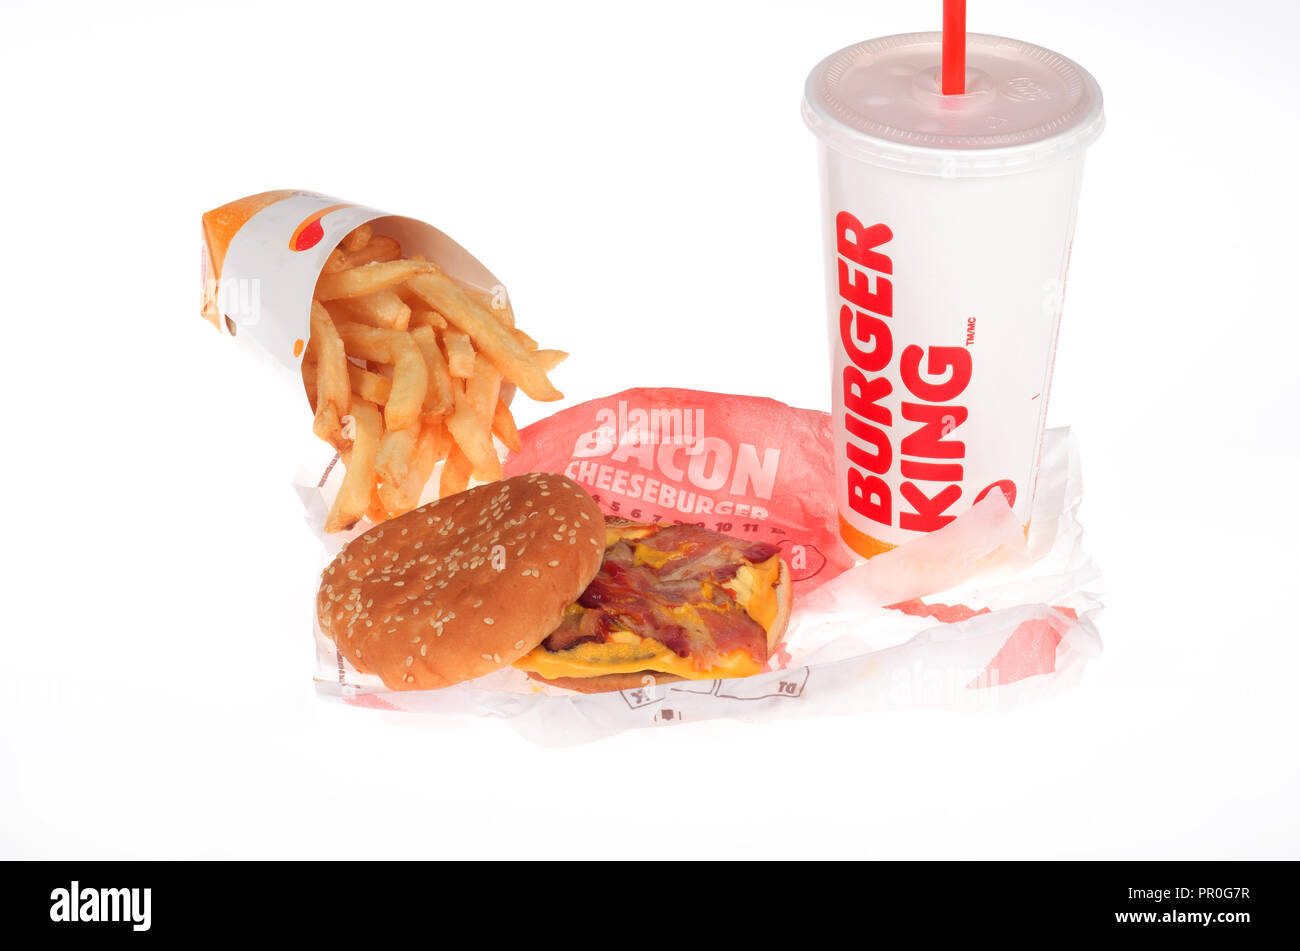 Burger meal with bacon cheeseburger, french fries or chips and a soda on white background - Stock Image